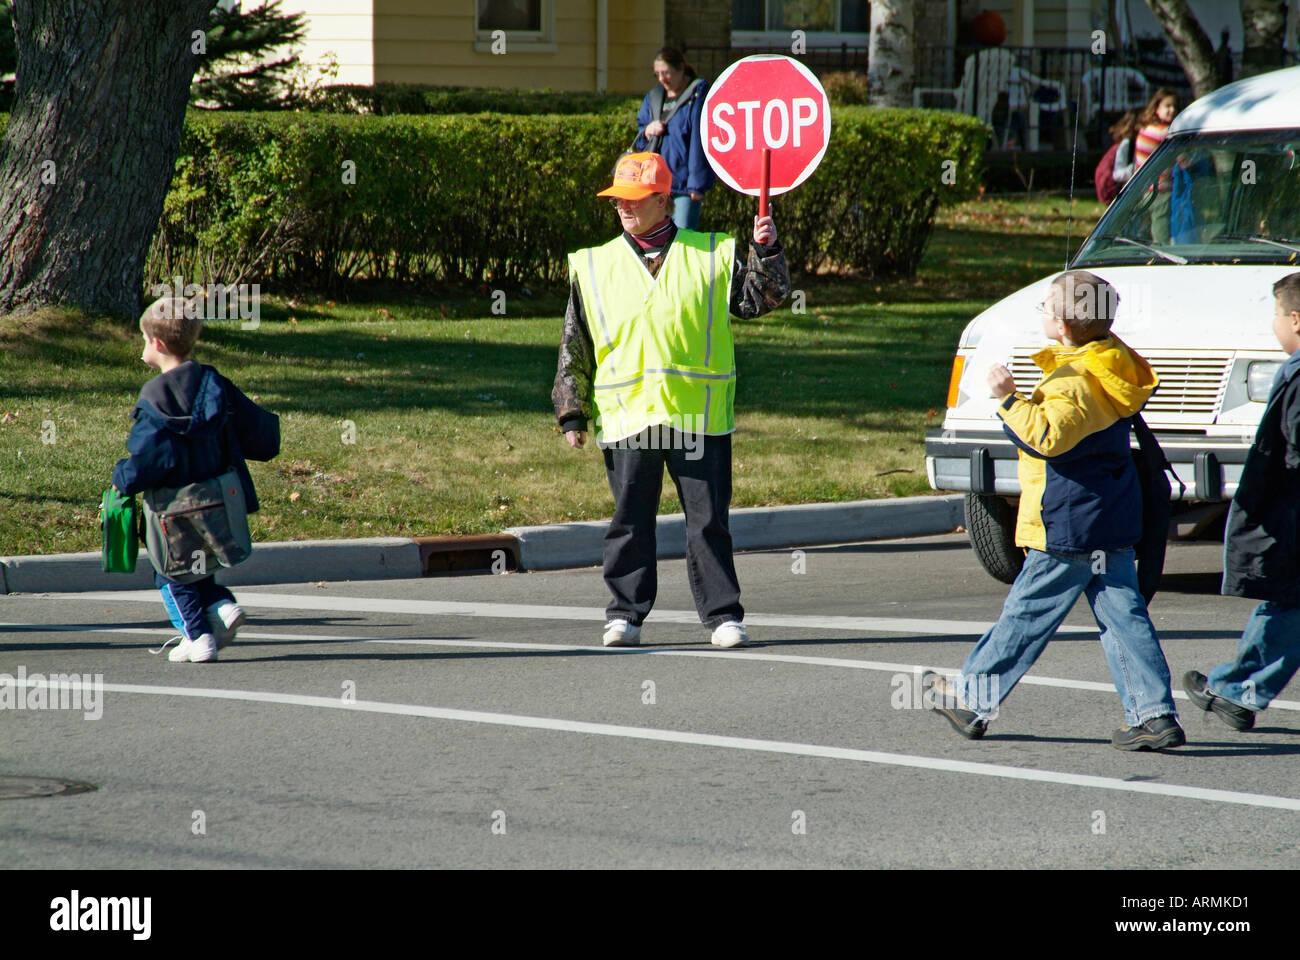 Elementary School Crossing Guard Provides Safety To